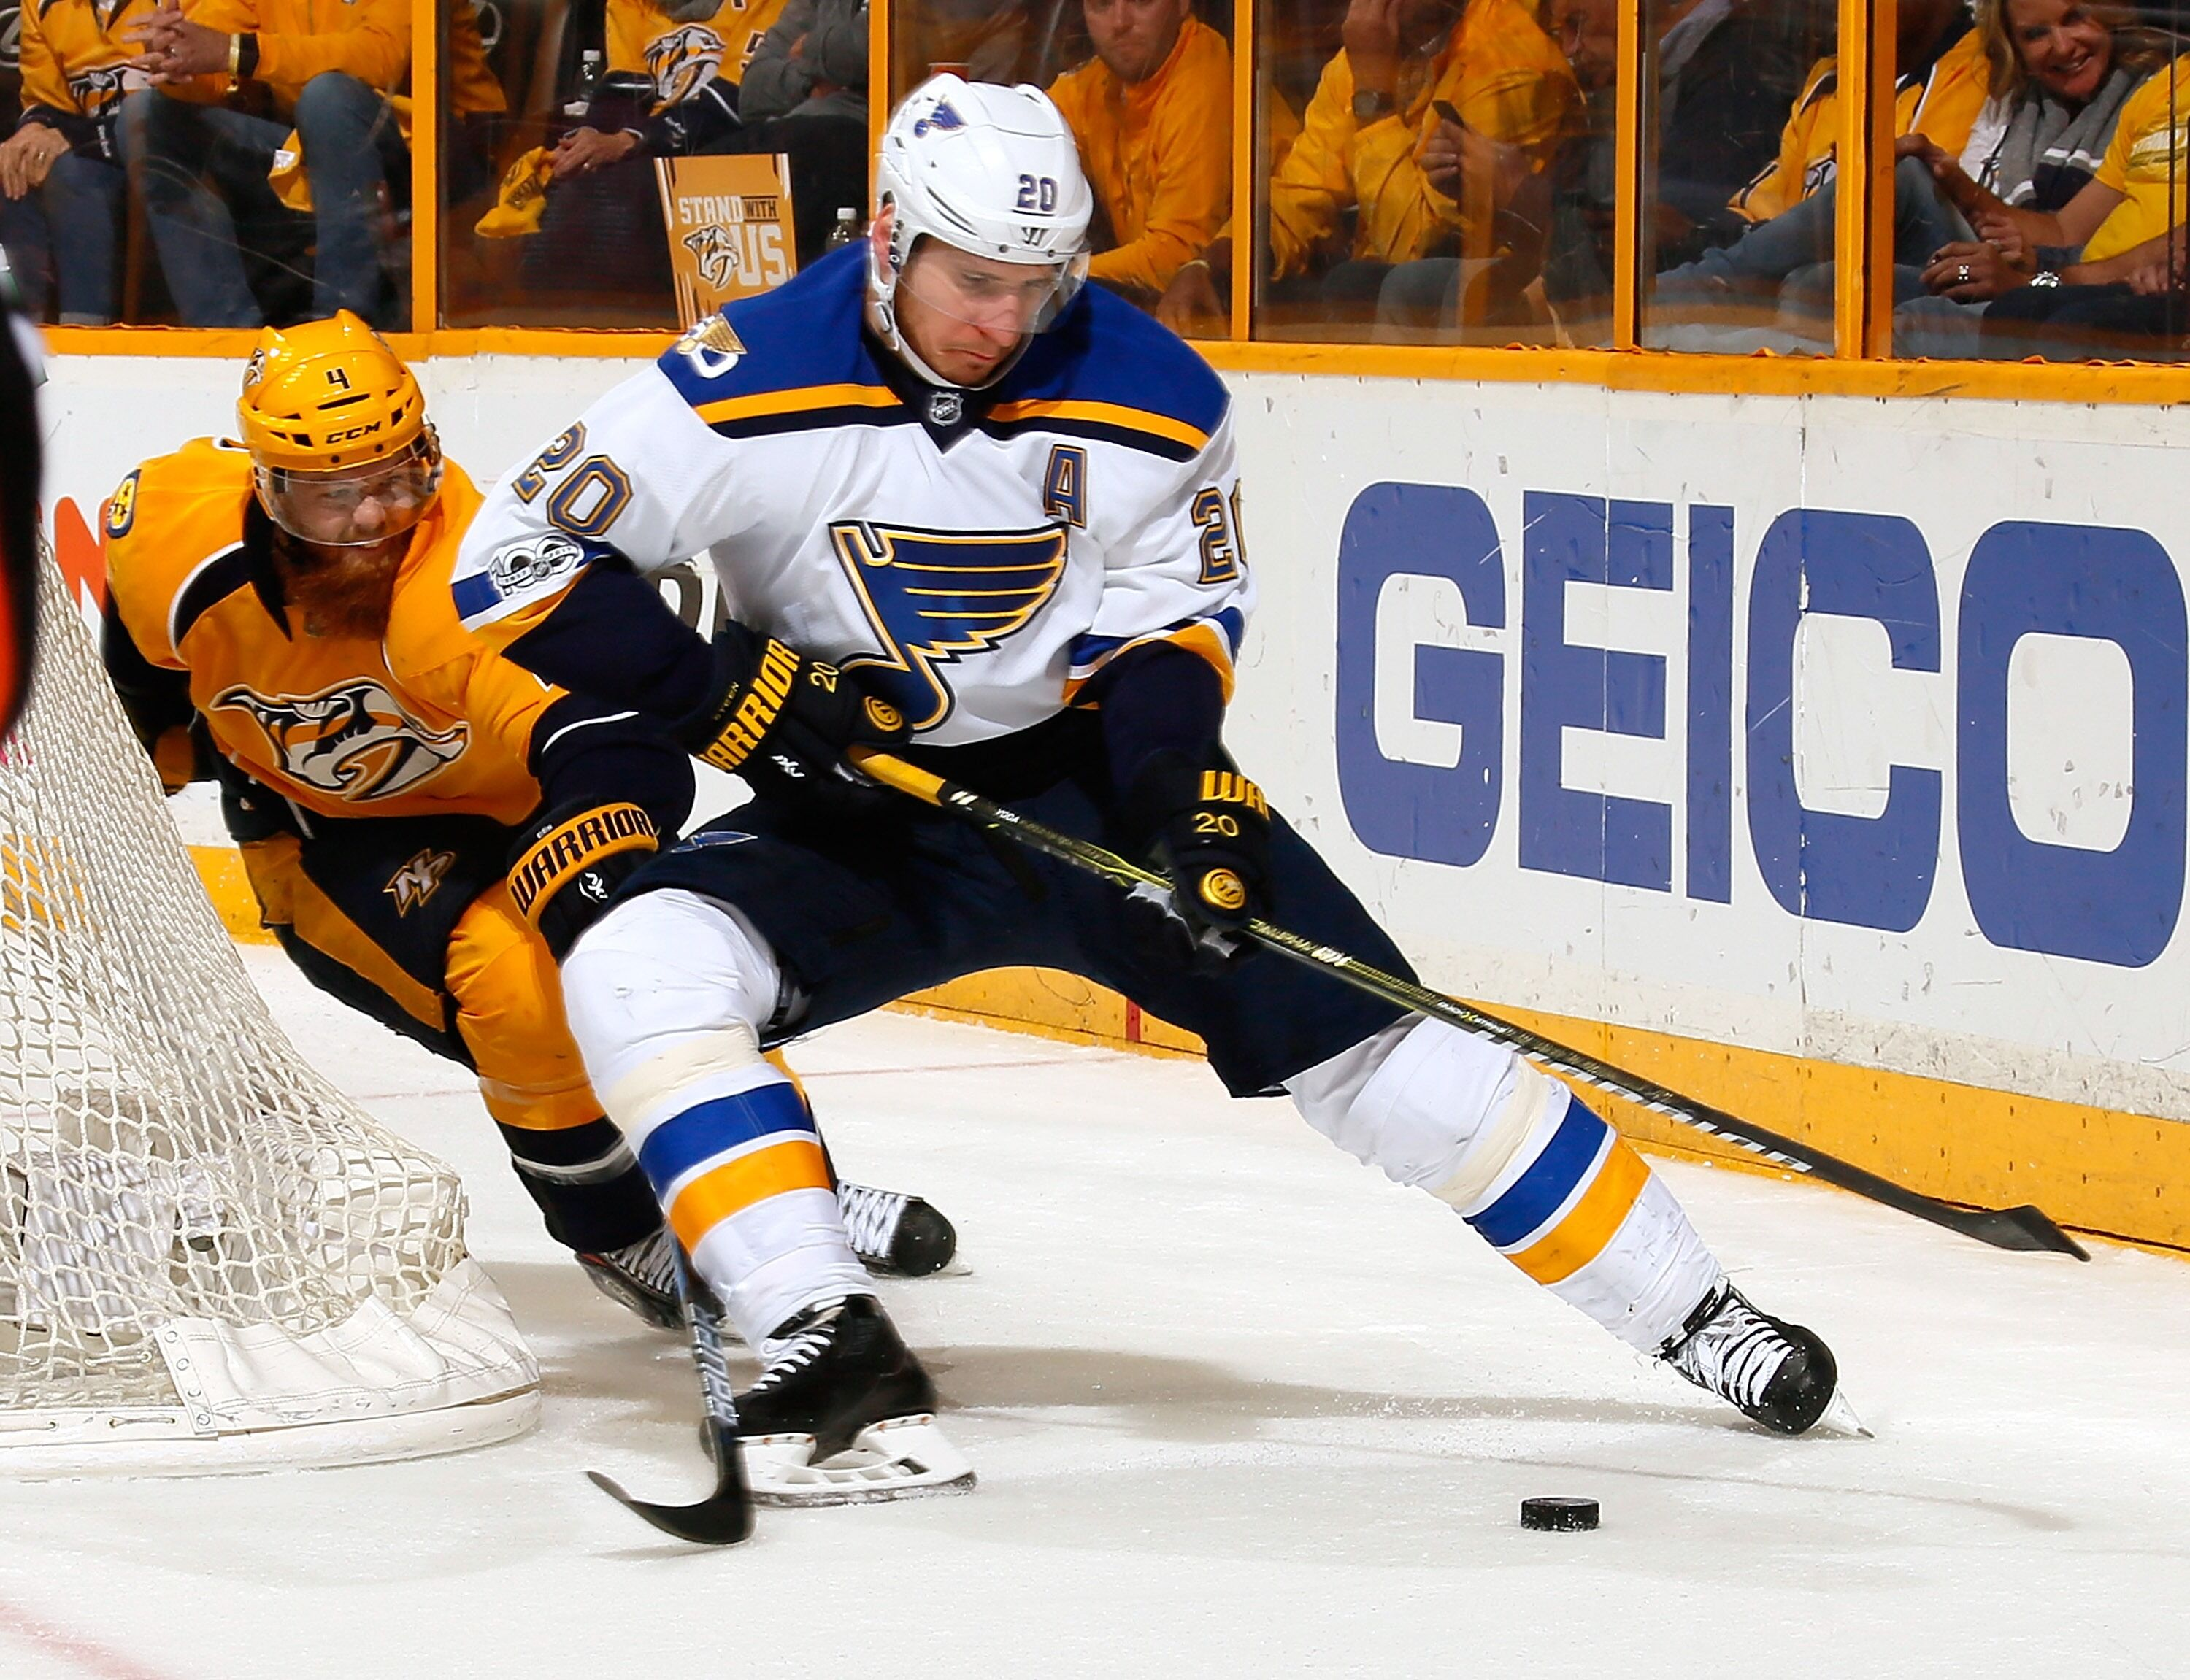 676862152-st-louis-blues-v-nashville-predators-game-four.jpg